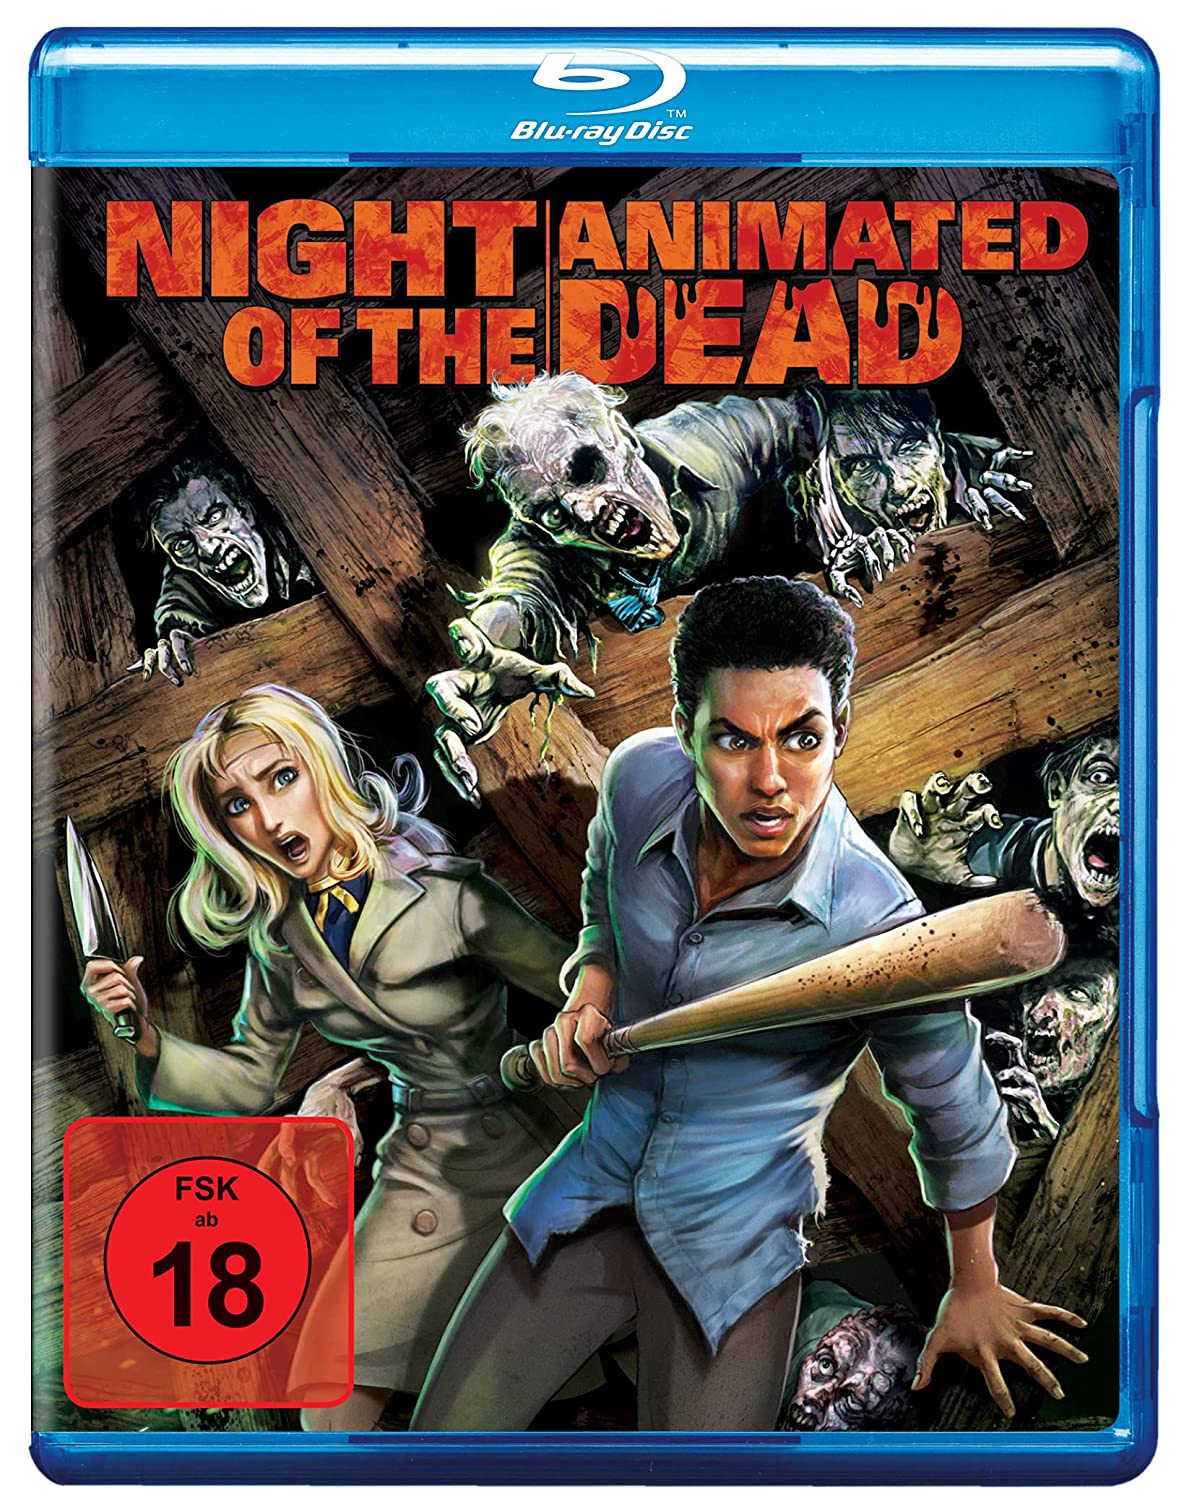 Night of the Animated Dead - Blu-ray